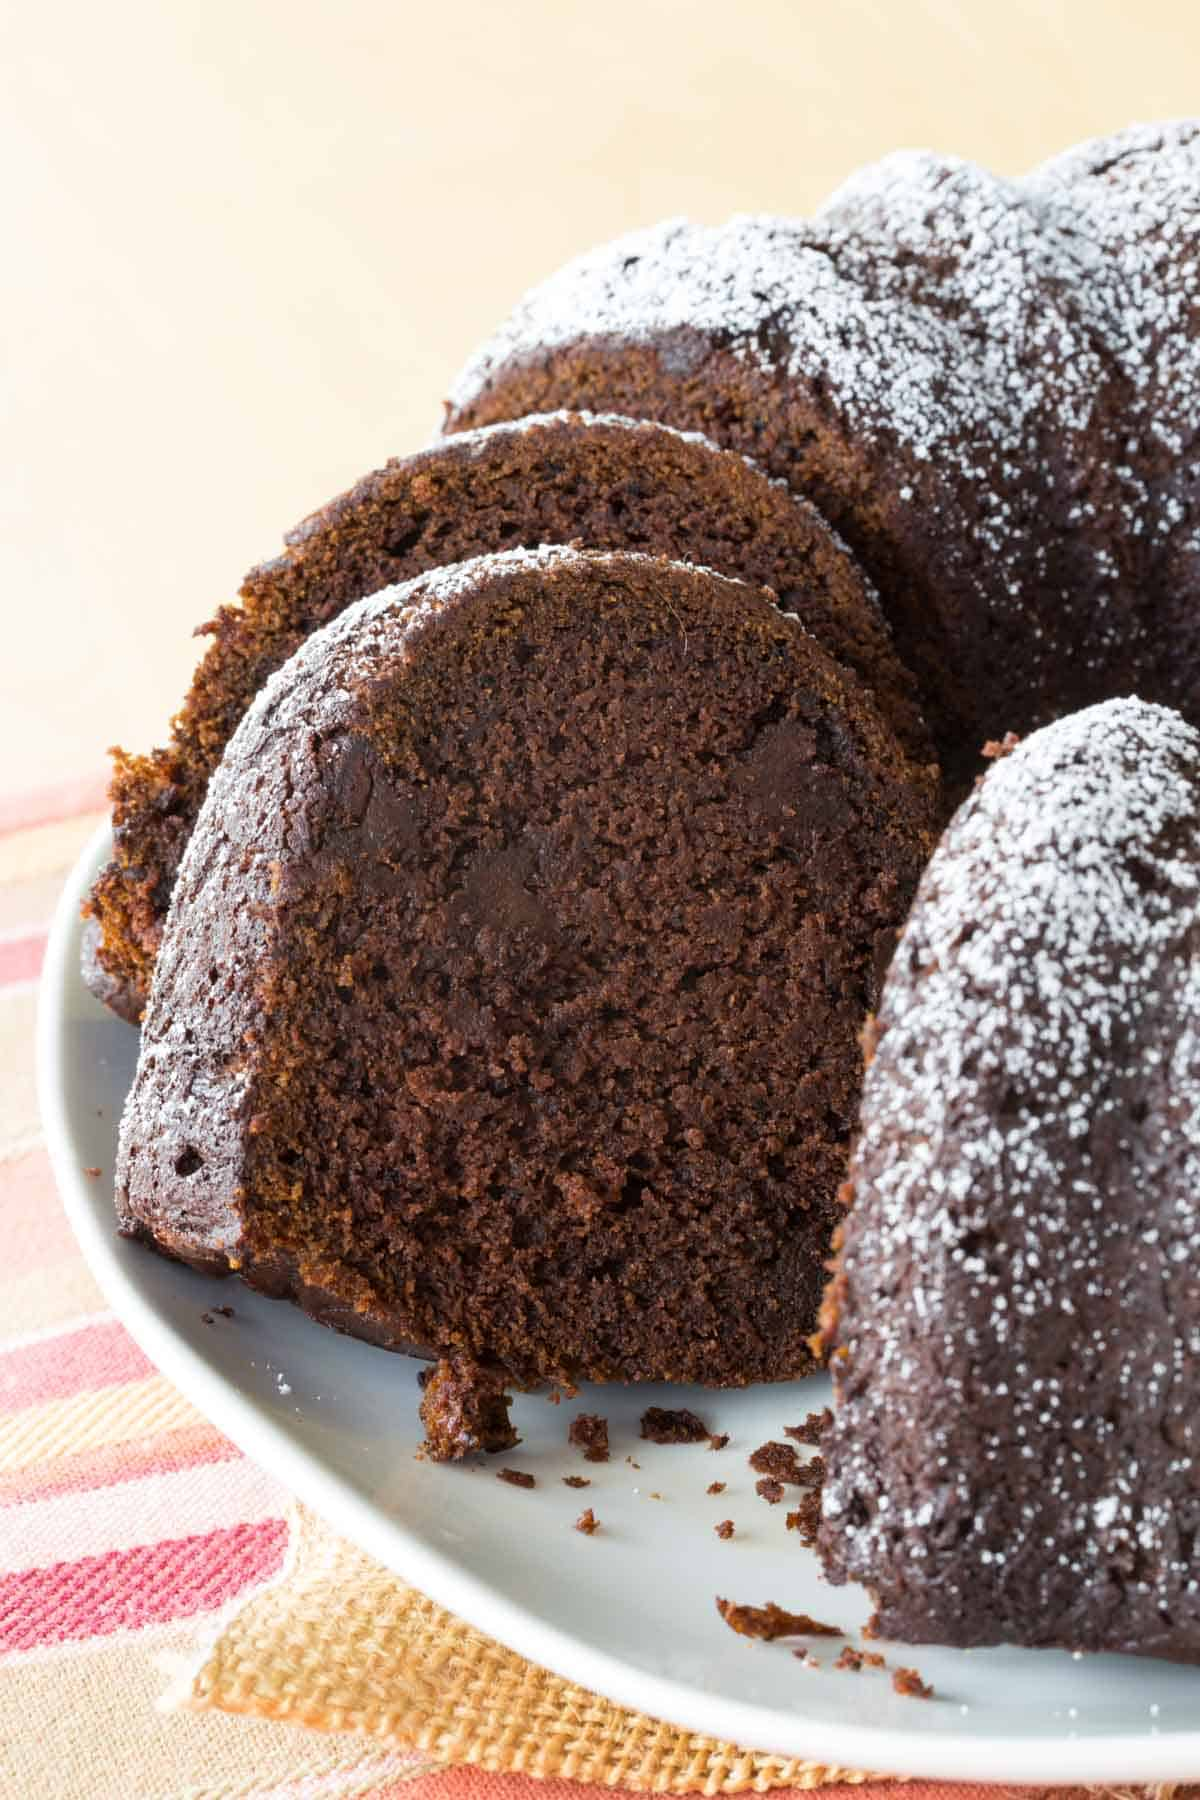 Sliced gluten free bundt cake on a platter